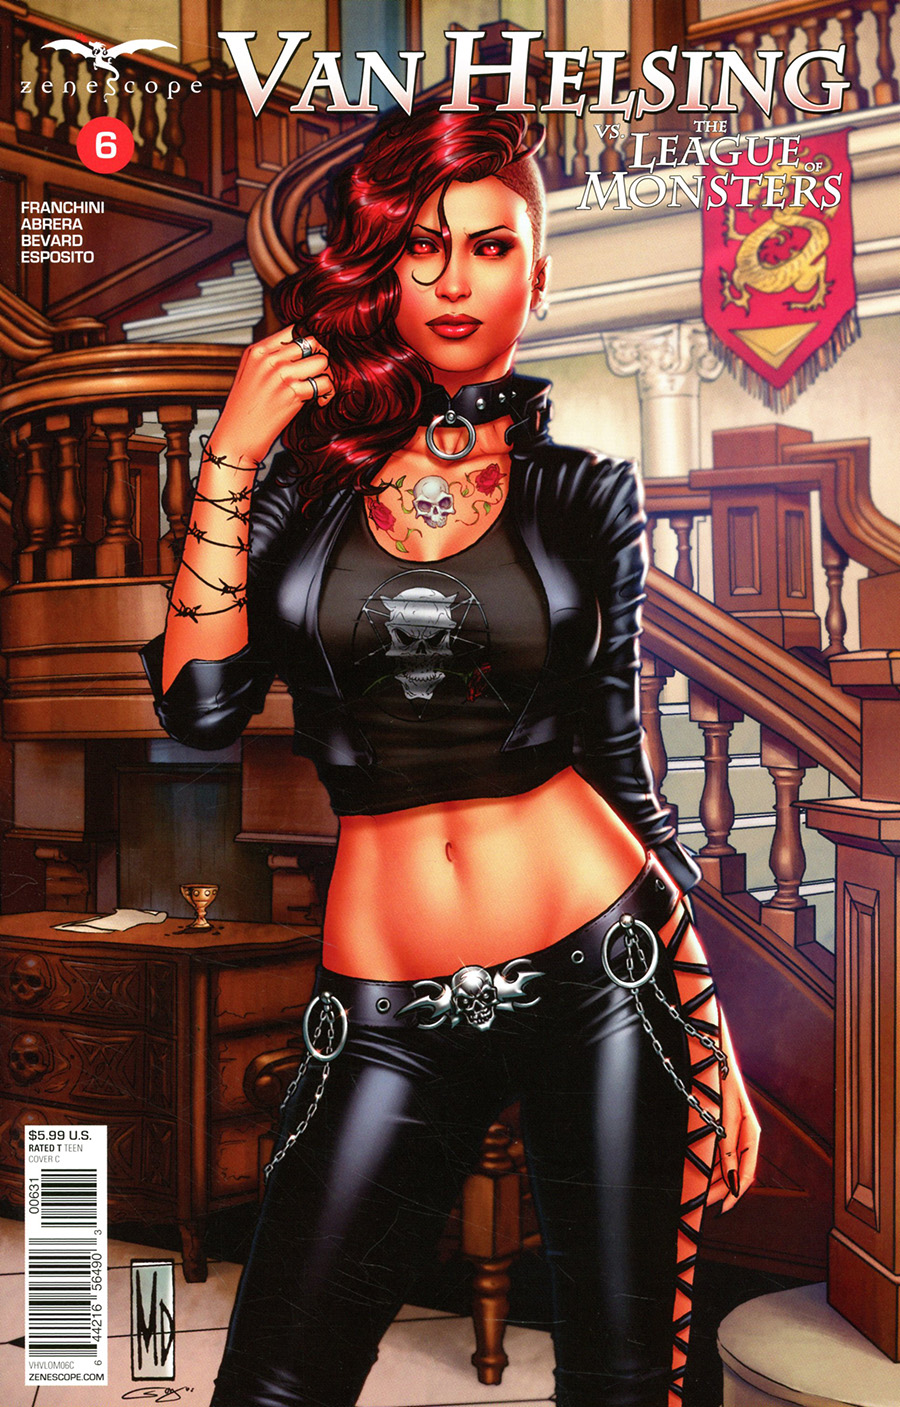 Grimm Fairy Tales Presents Van Helsing vs The League Of Monsters #6 Cover C Michael DiPascale